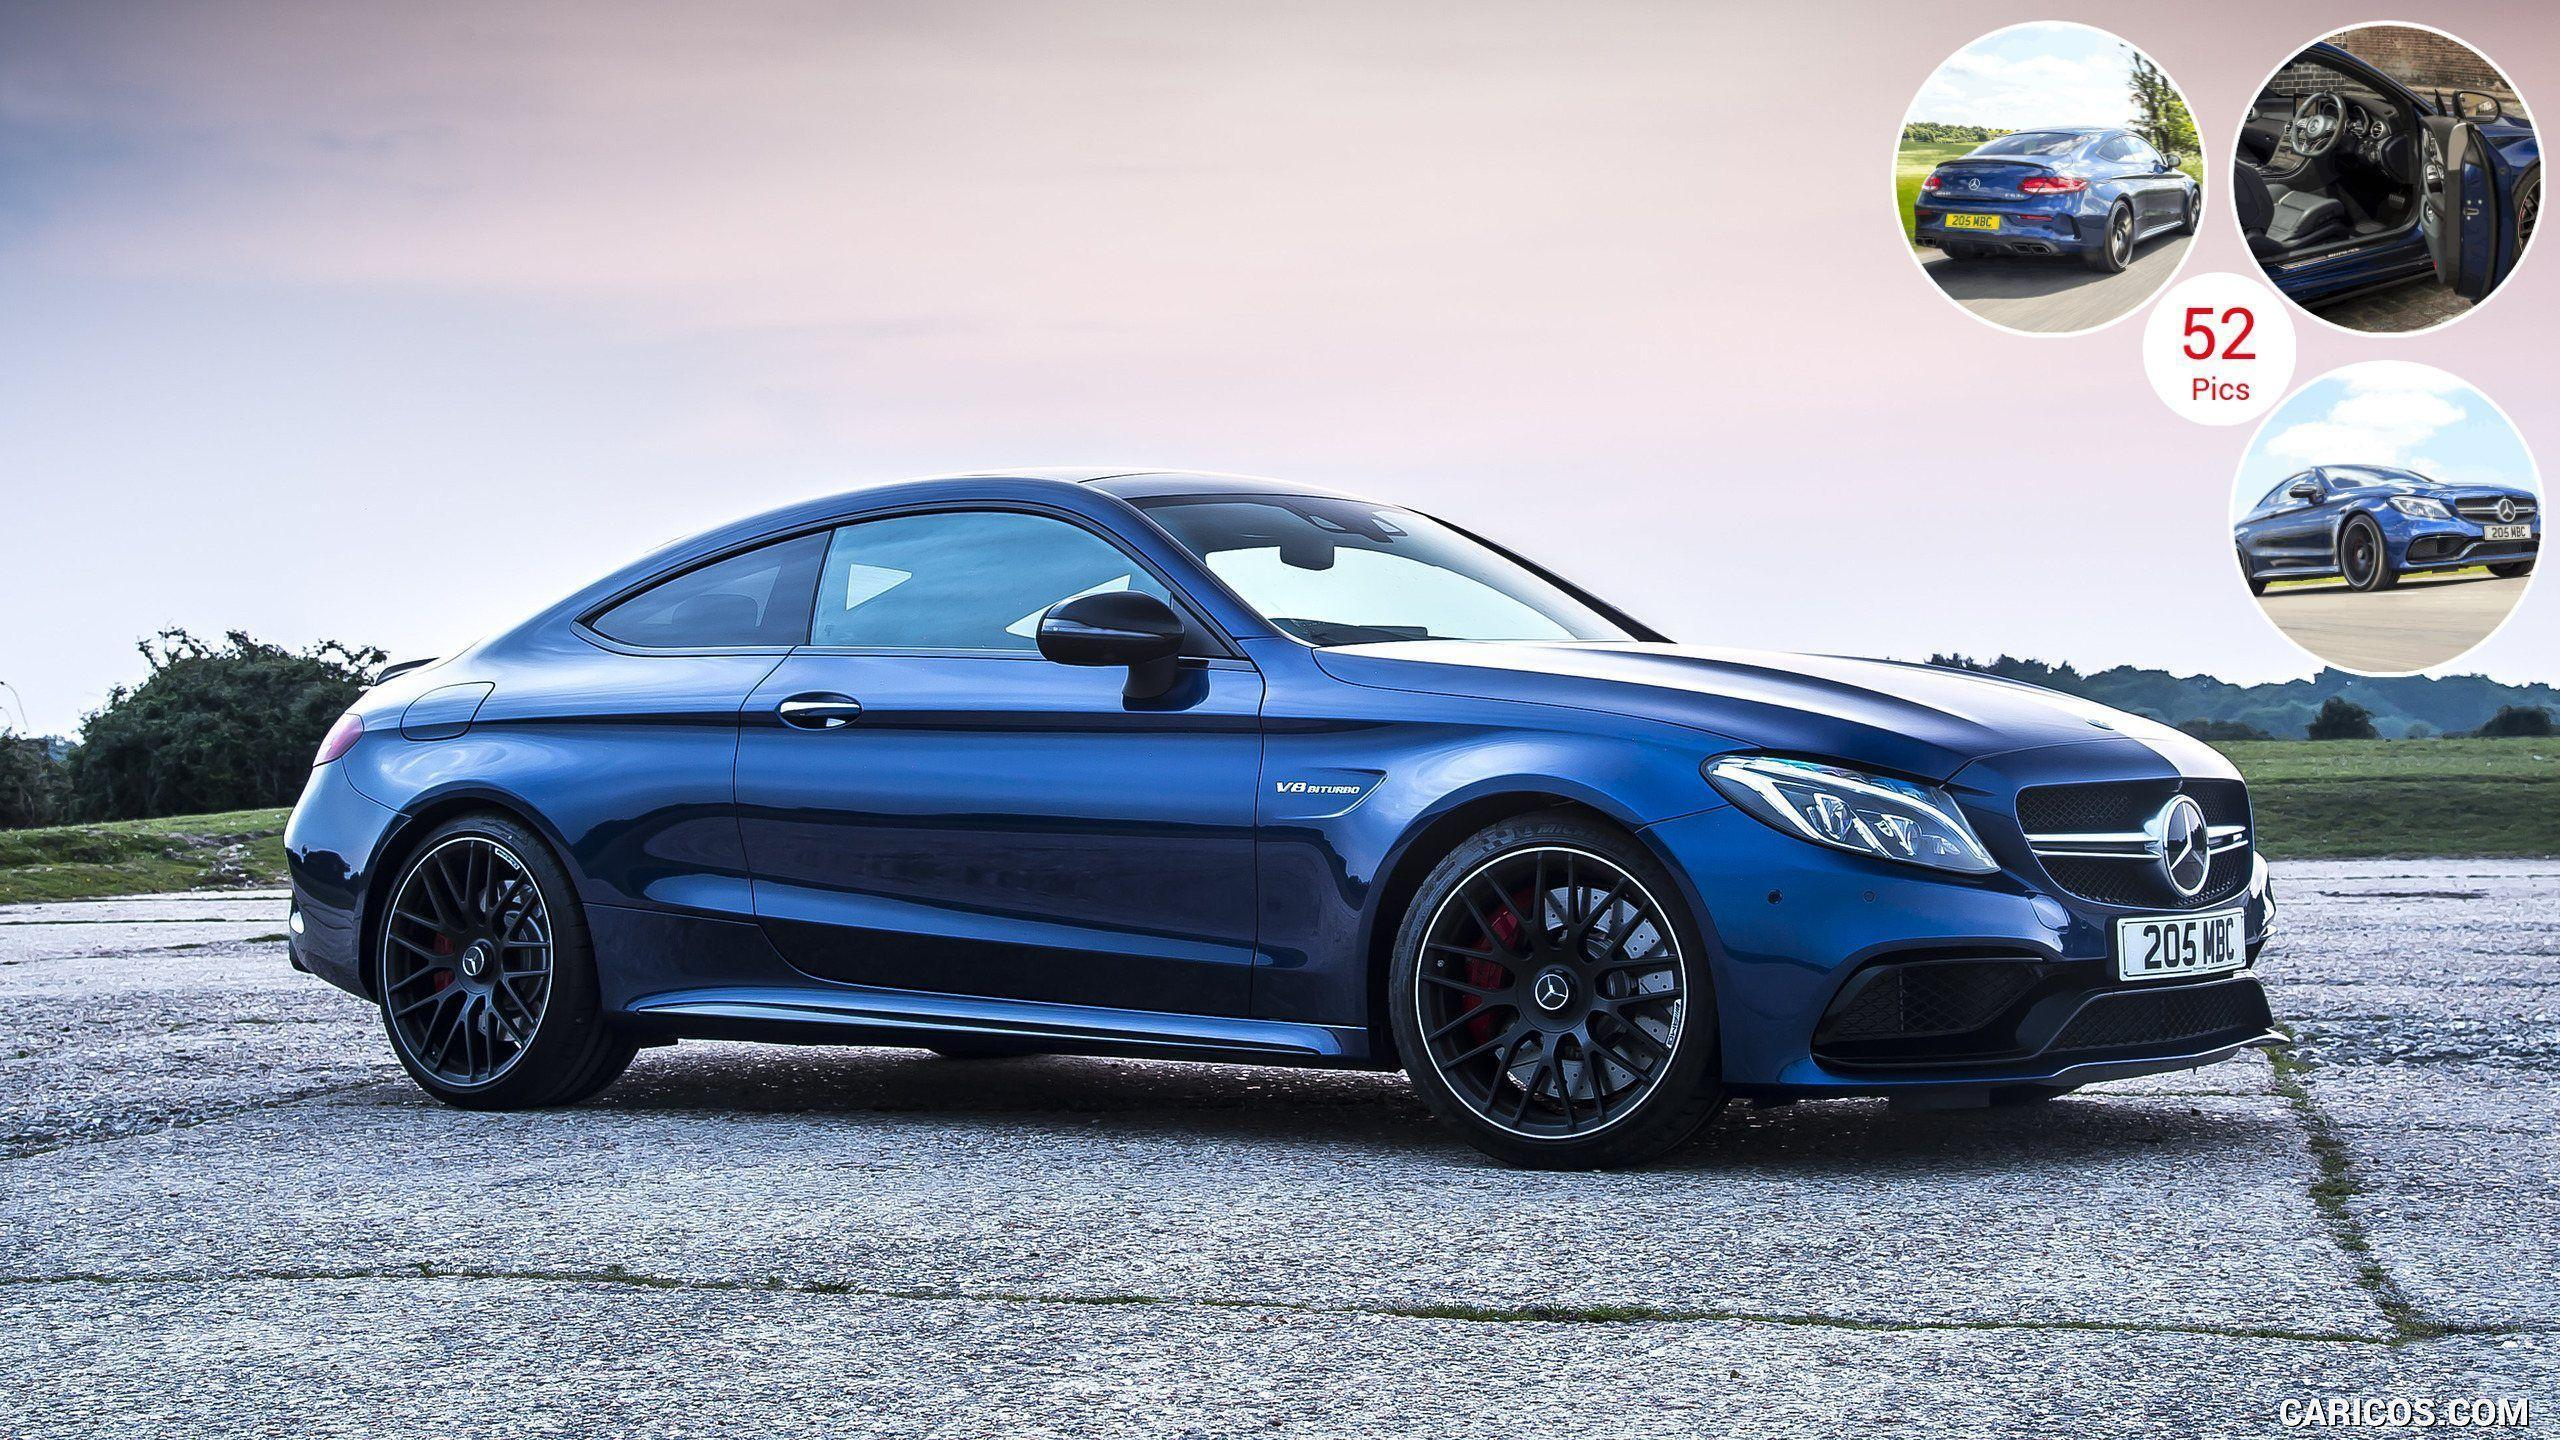 Mercedes AMG C63 S Coupe Wallpapers 2560x1440